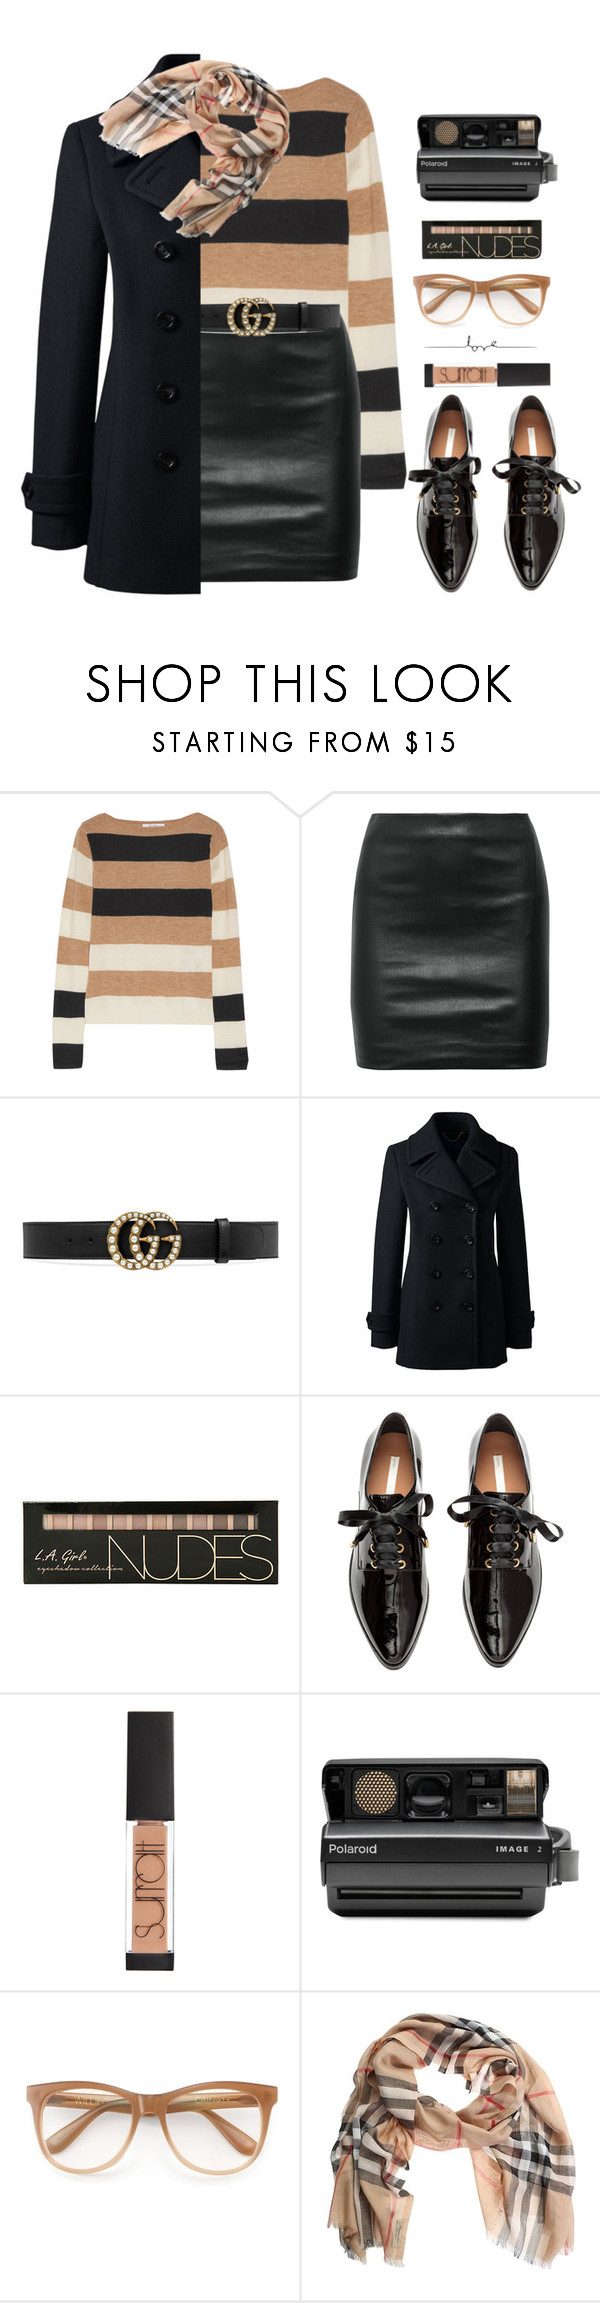 """Cashmere & Leather!"" by prettynposh2 ❤ liked on Polyvore featuring MaxMara, The Row, Gucci, Lands' End, Surratt, Polaroid, Wildfox, Burberry, cashmere and wintersweater"